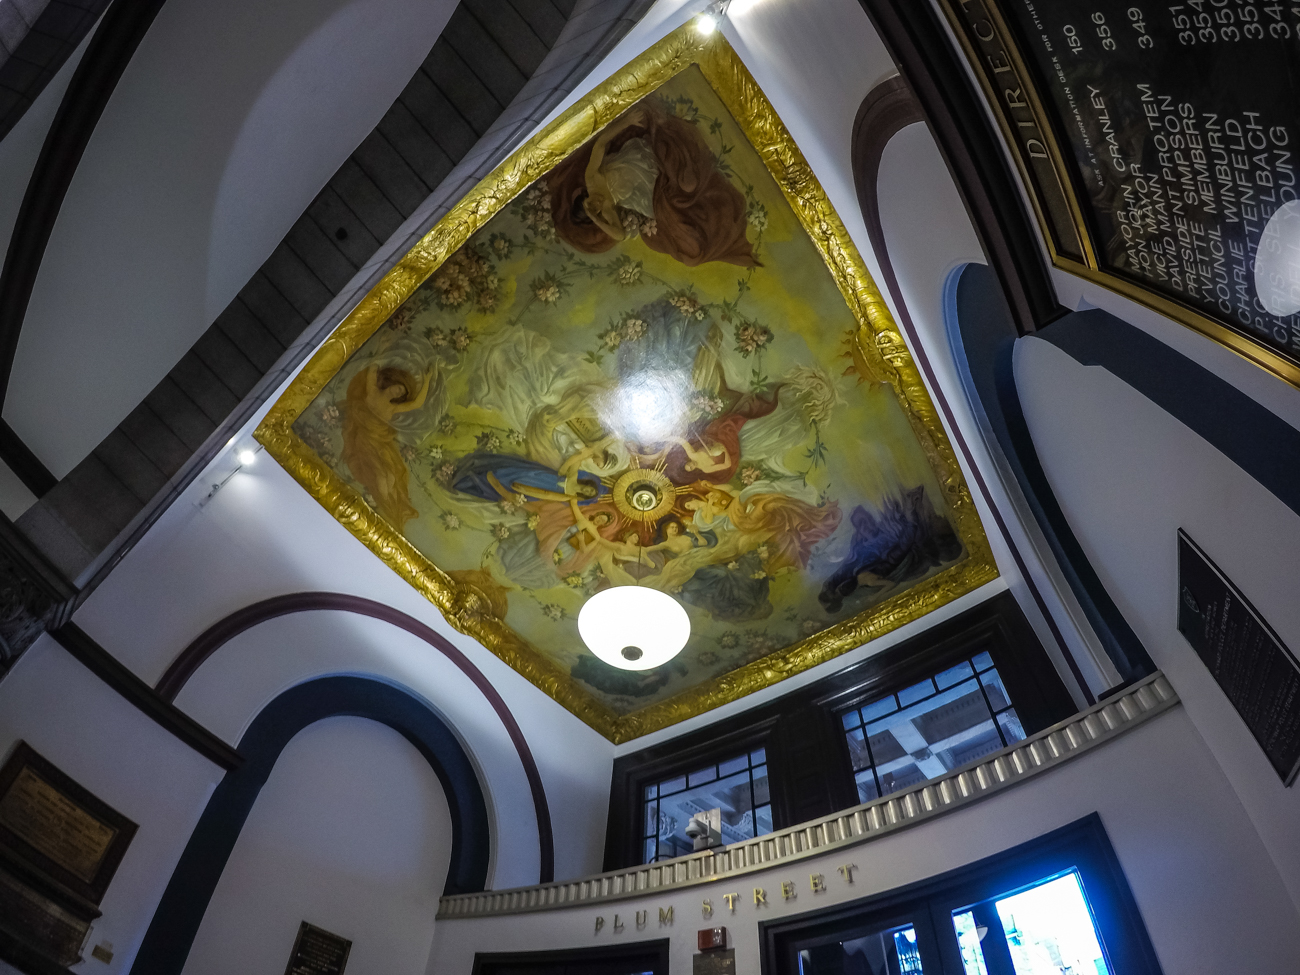 A breath-taking ceiling mural greets people as they enter the Plum Street entrance of City Hall. / Image: Phil Armstrong, Cincinnati Refined // Published: 1.20.17